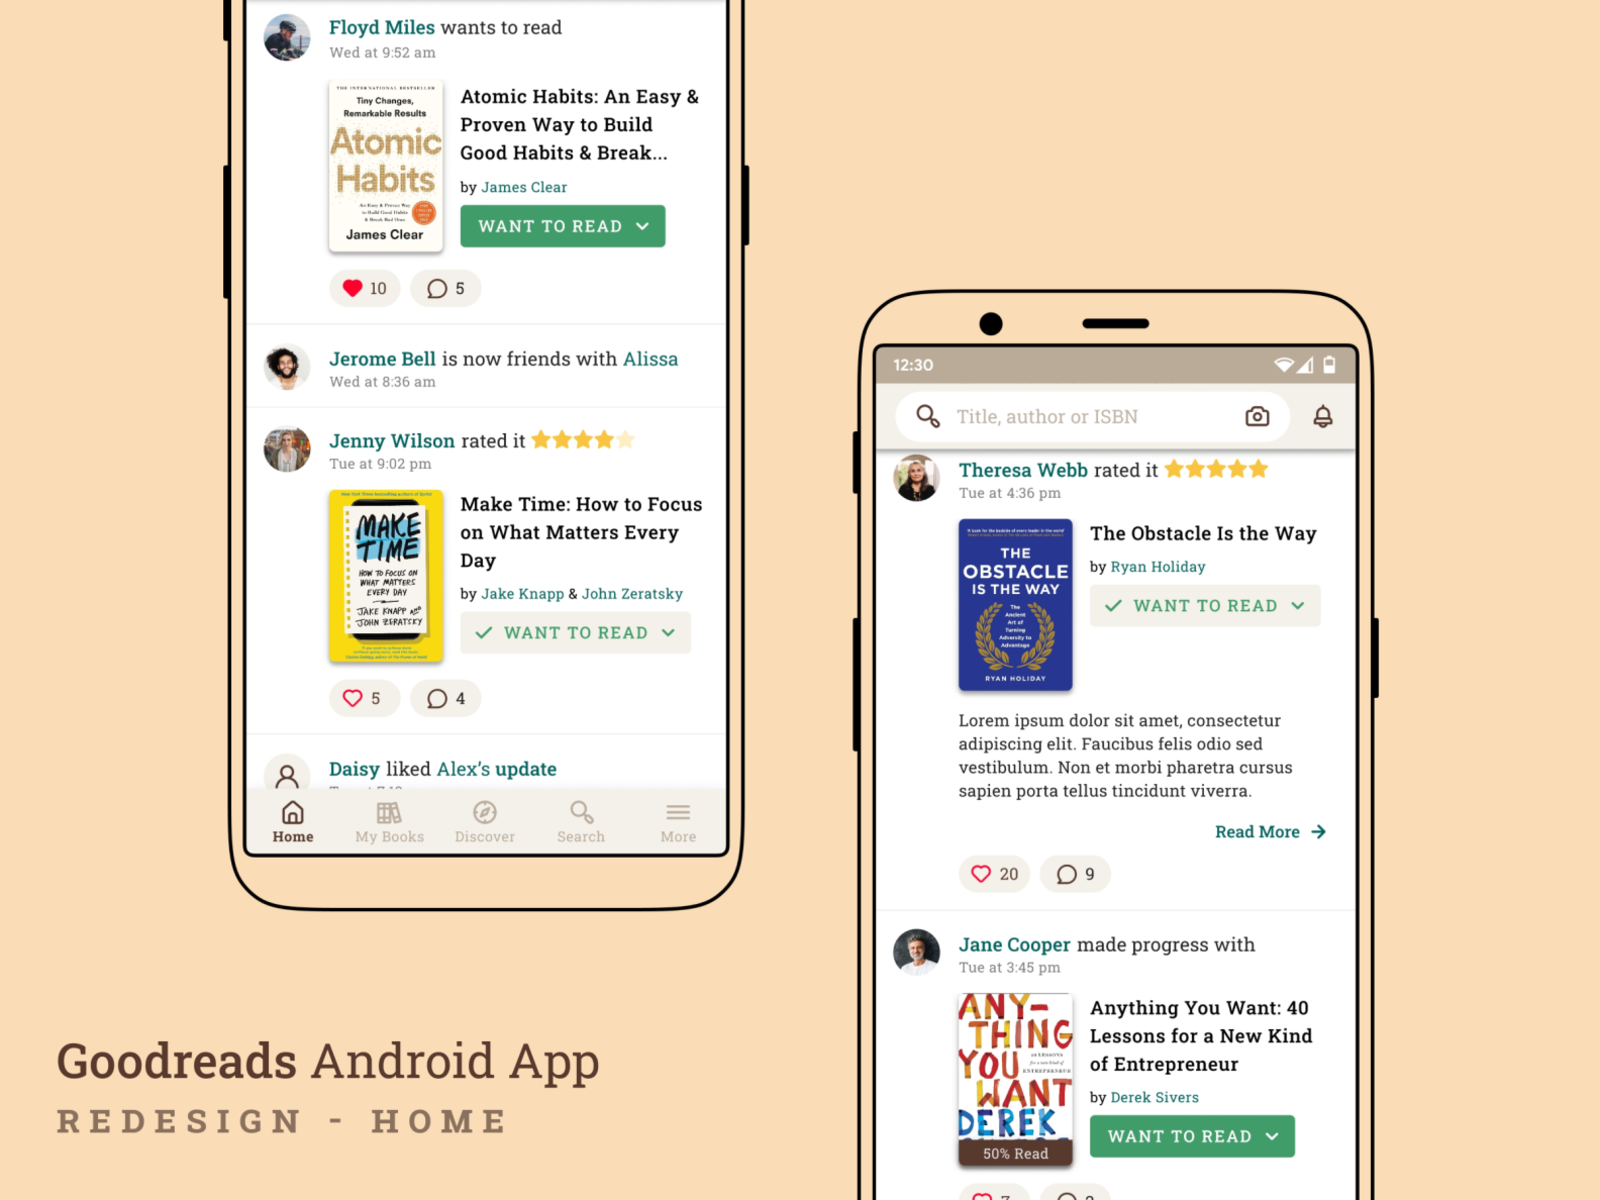 Goodreads Android App - Redesign - Home